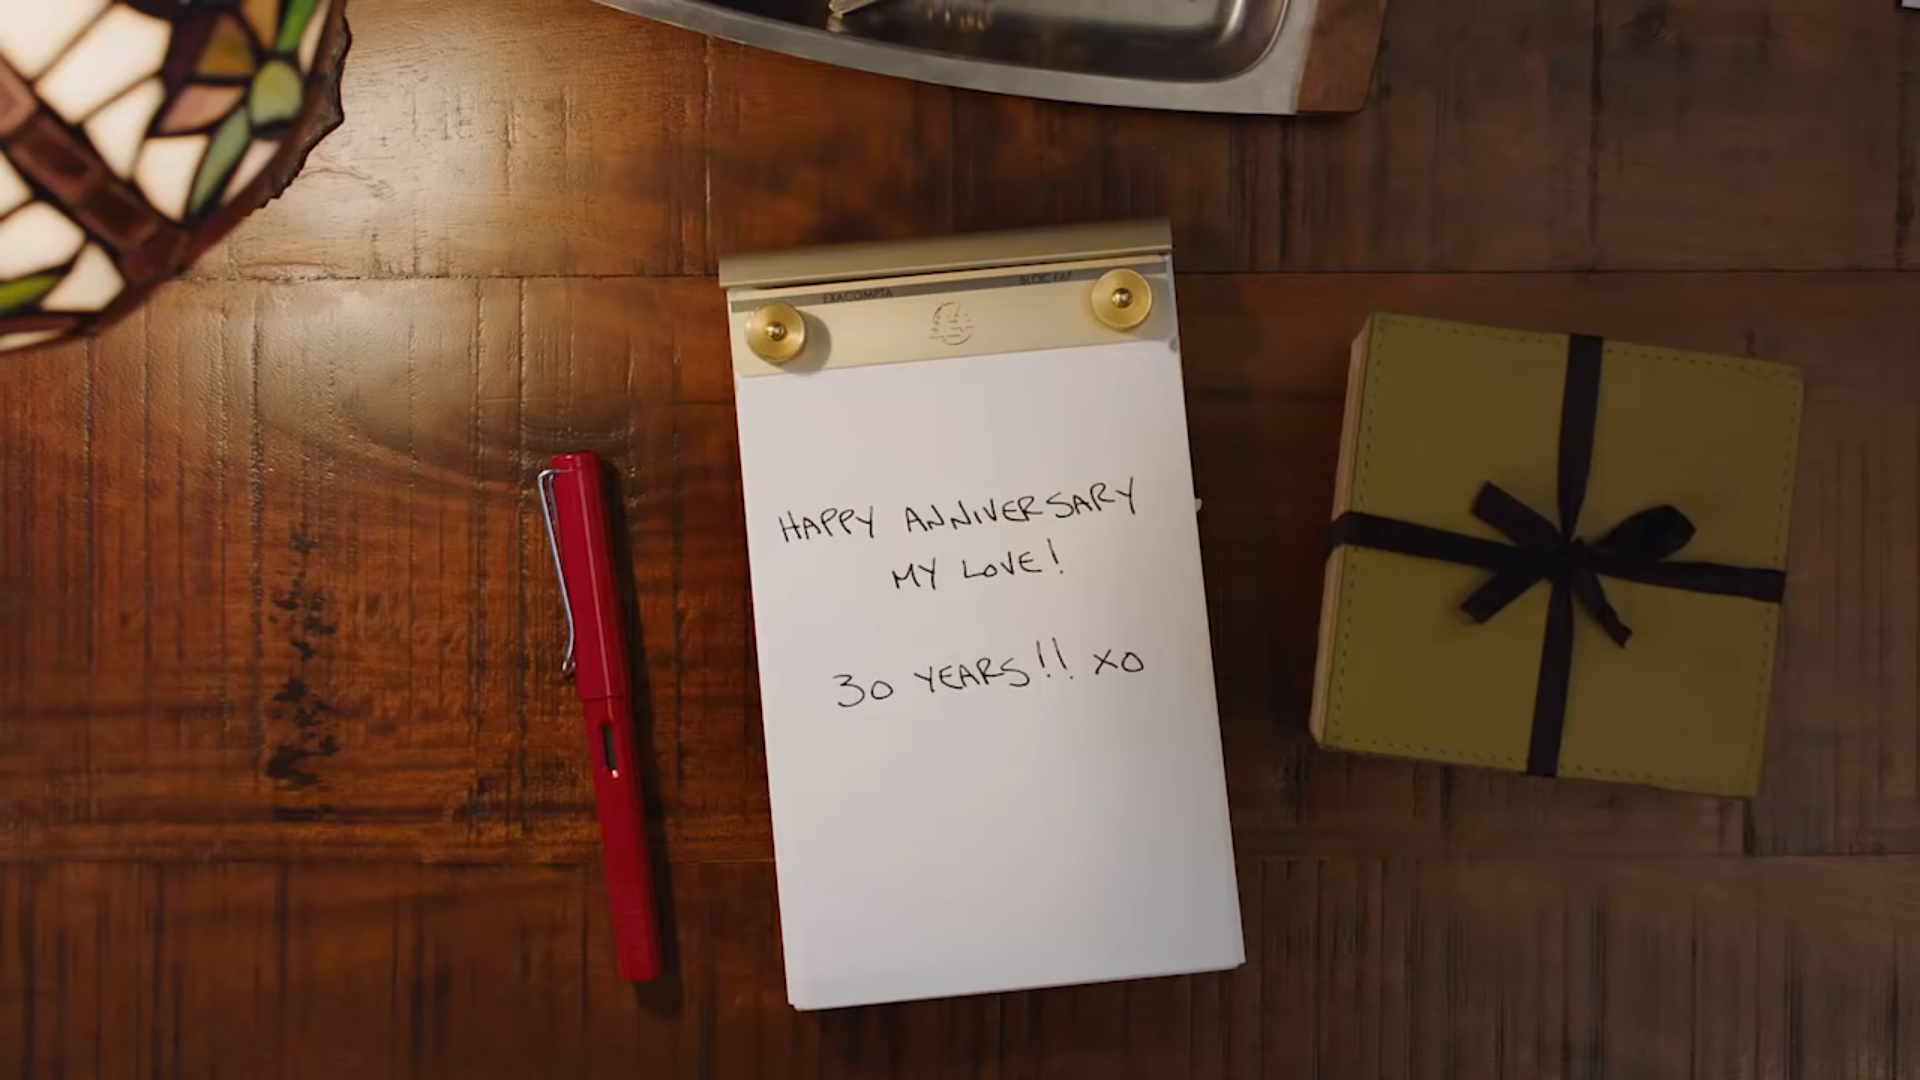 Notepad with 'happy anniversary' message from branded company video